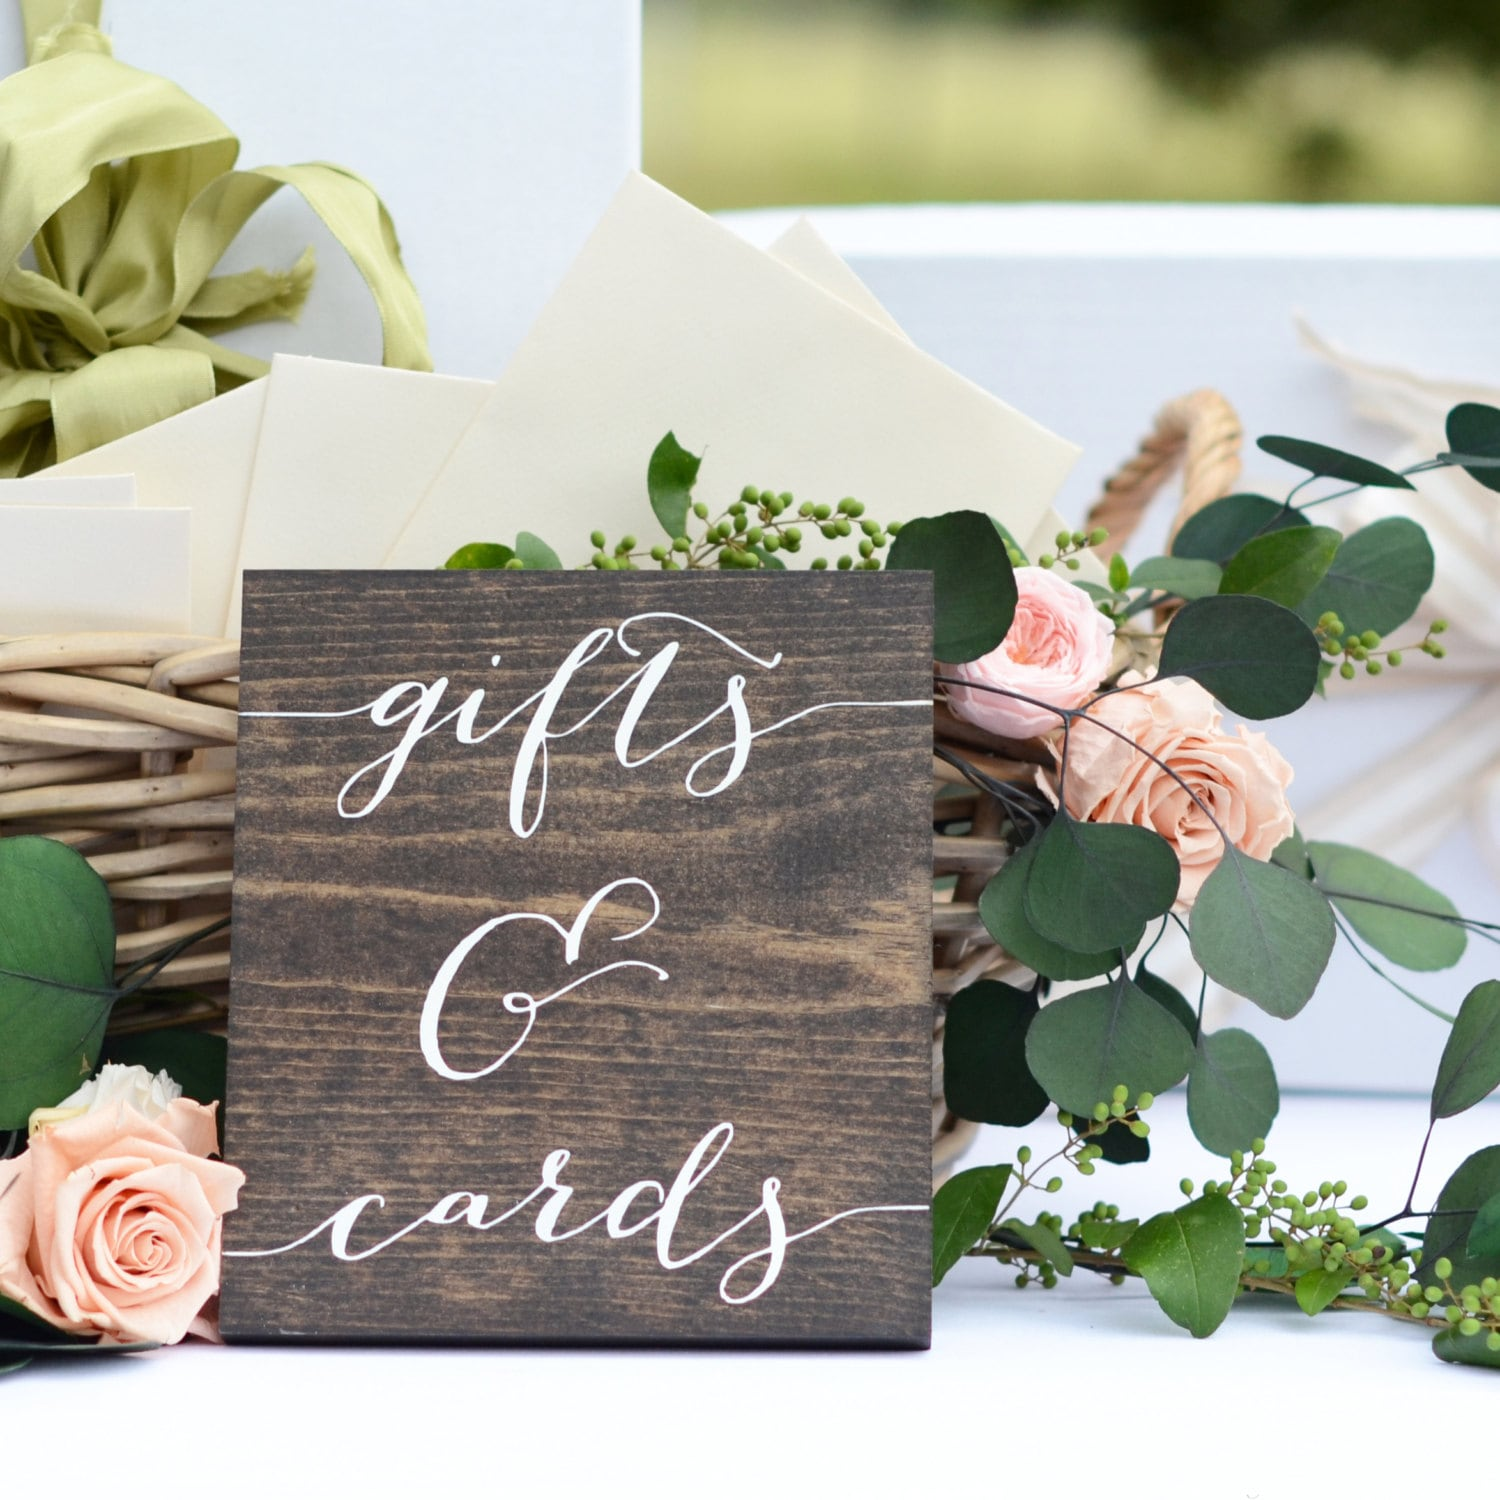 Wedding Gift Table Sign Ideas : Gifts and Cards Sign Wedding Gift Table Sign Gifts Sign